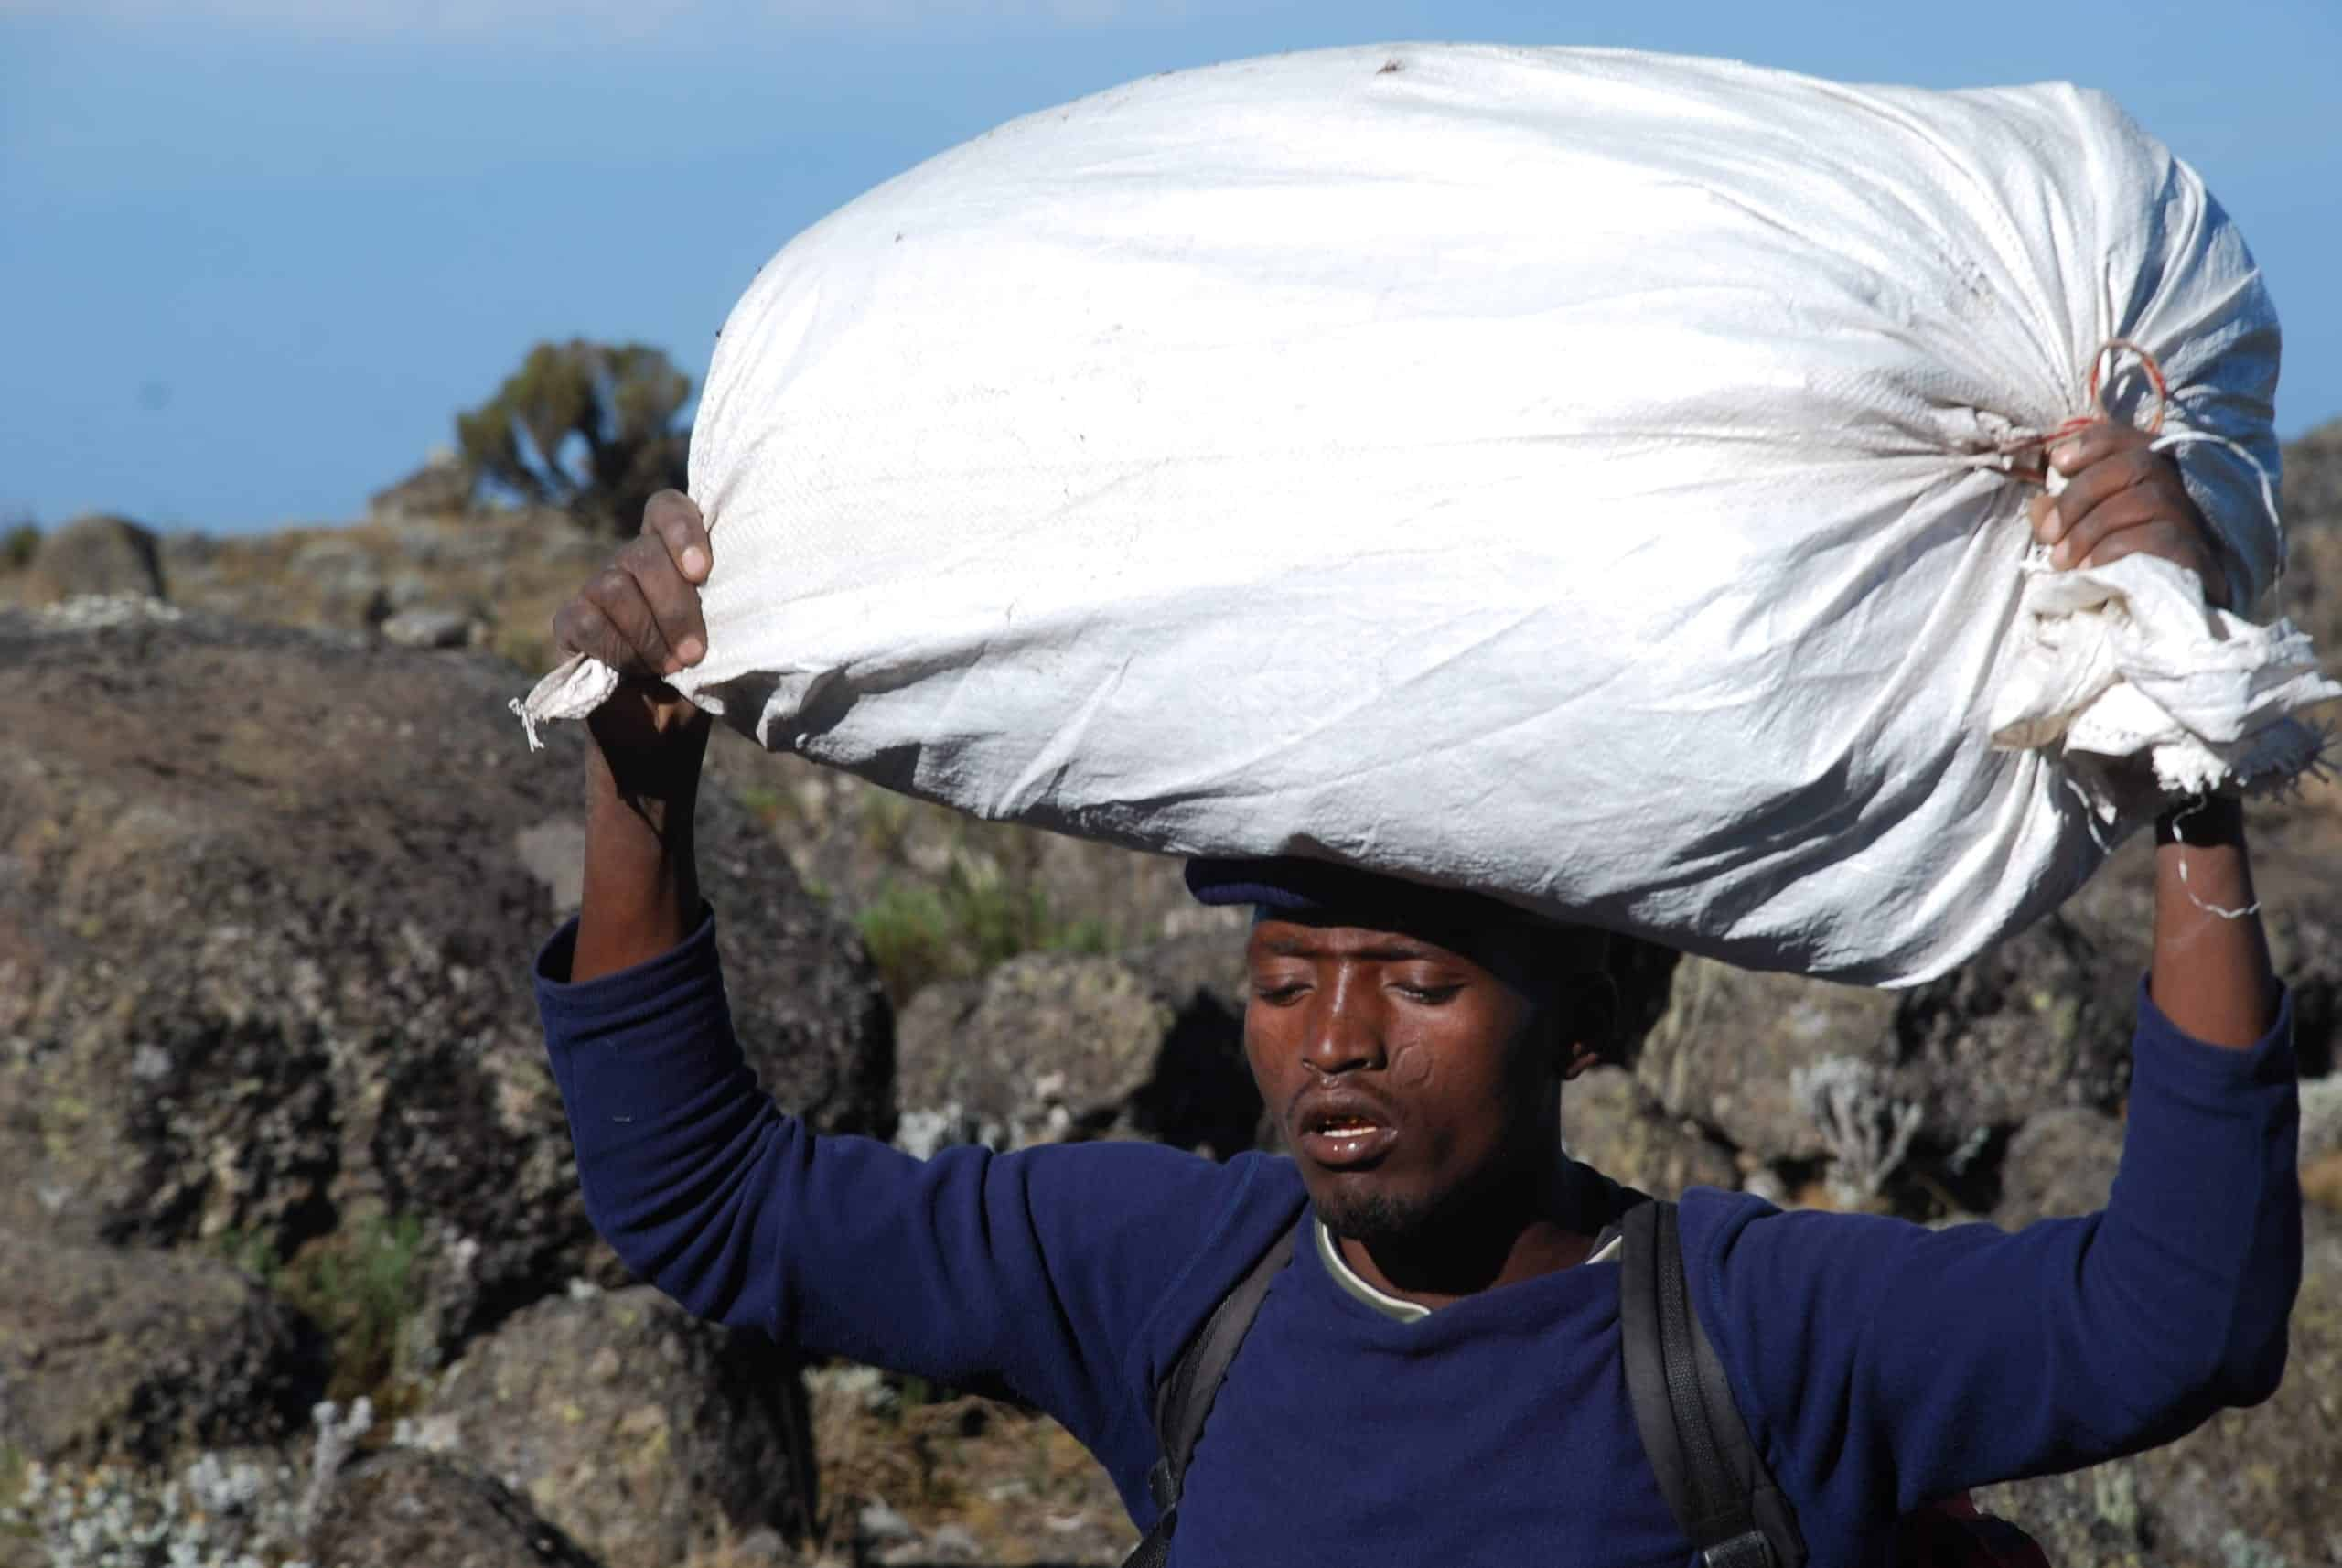 Porter with luggage covered by rice sack balanced on his head, marches up the slopes of Kilimanjaro